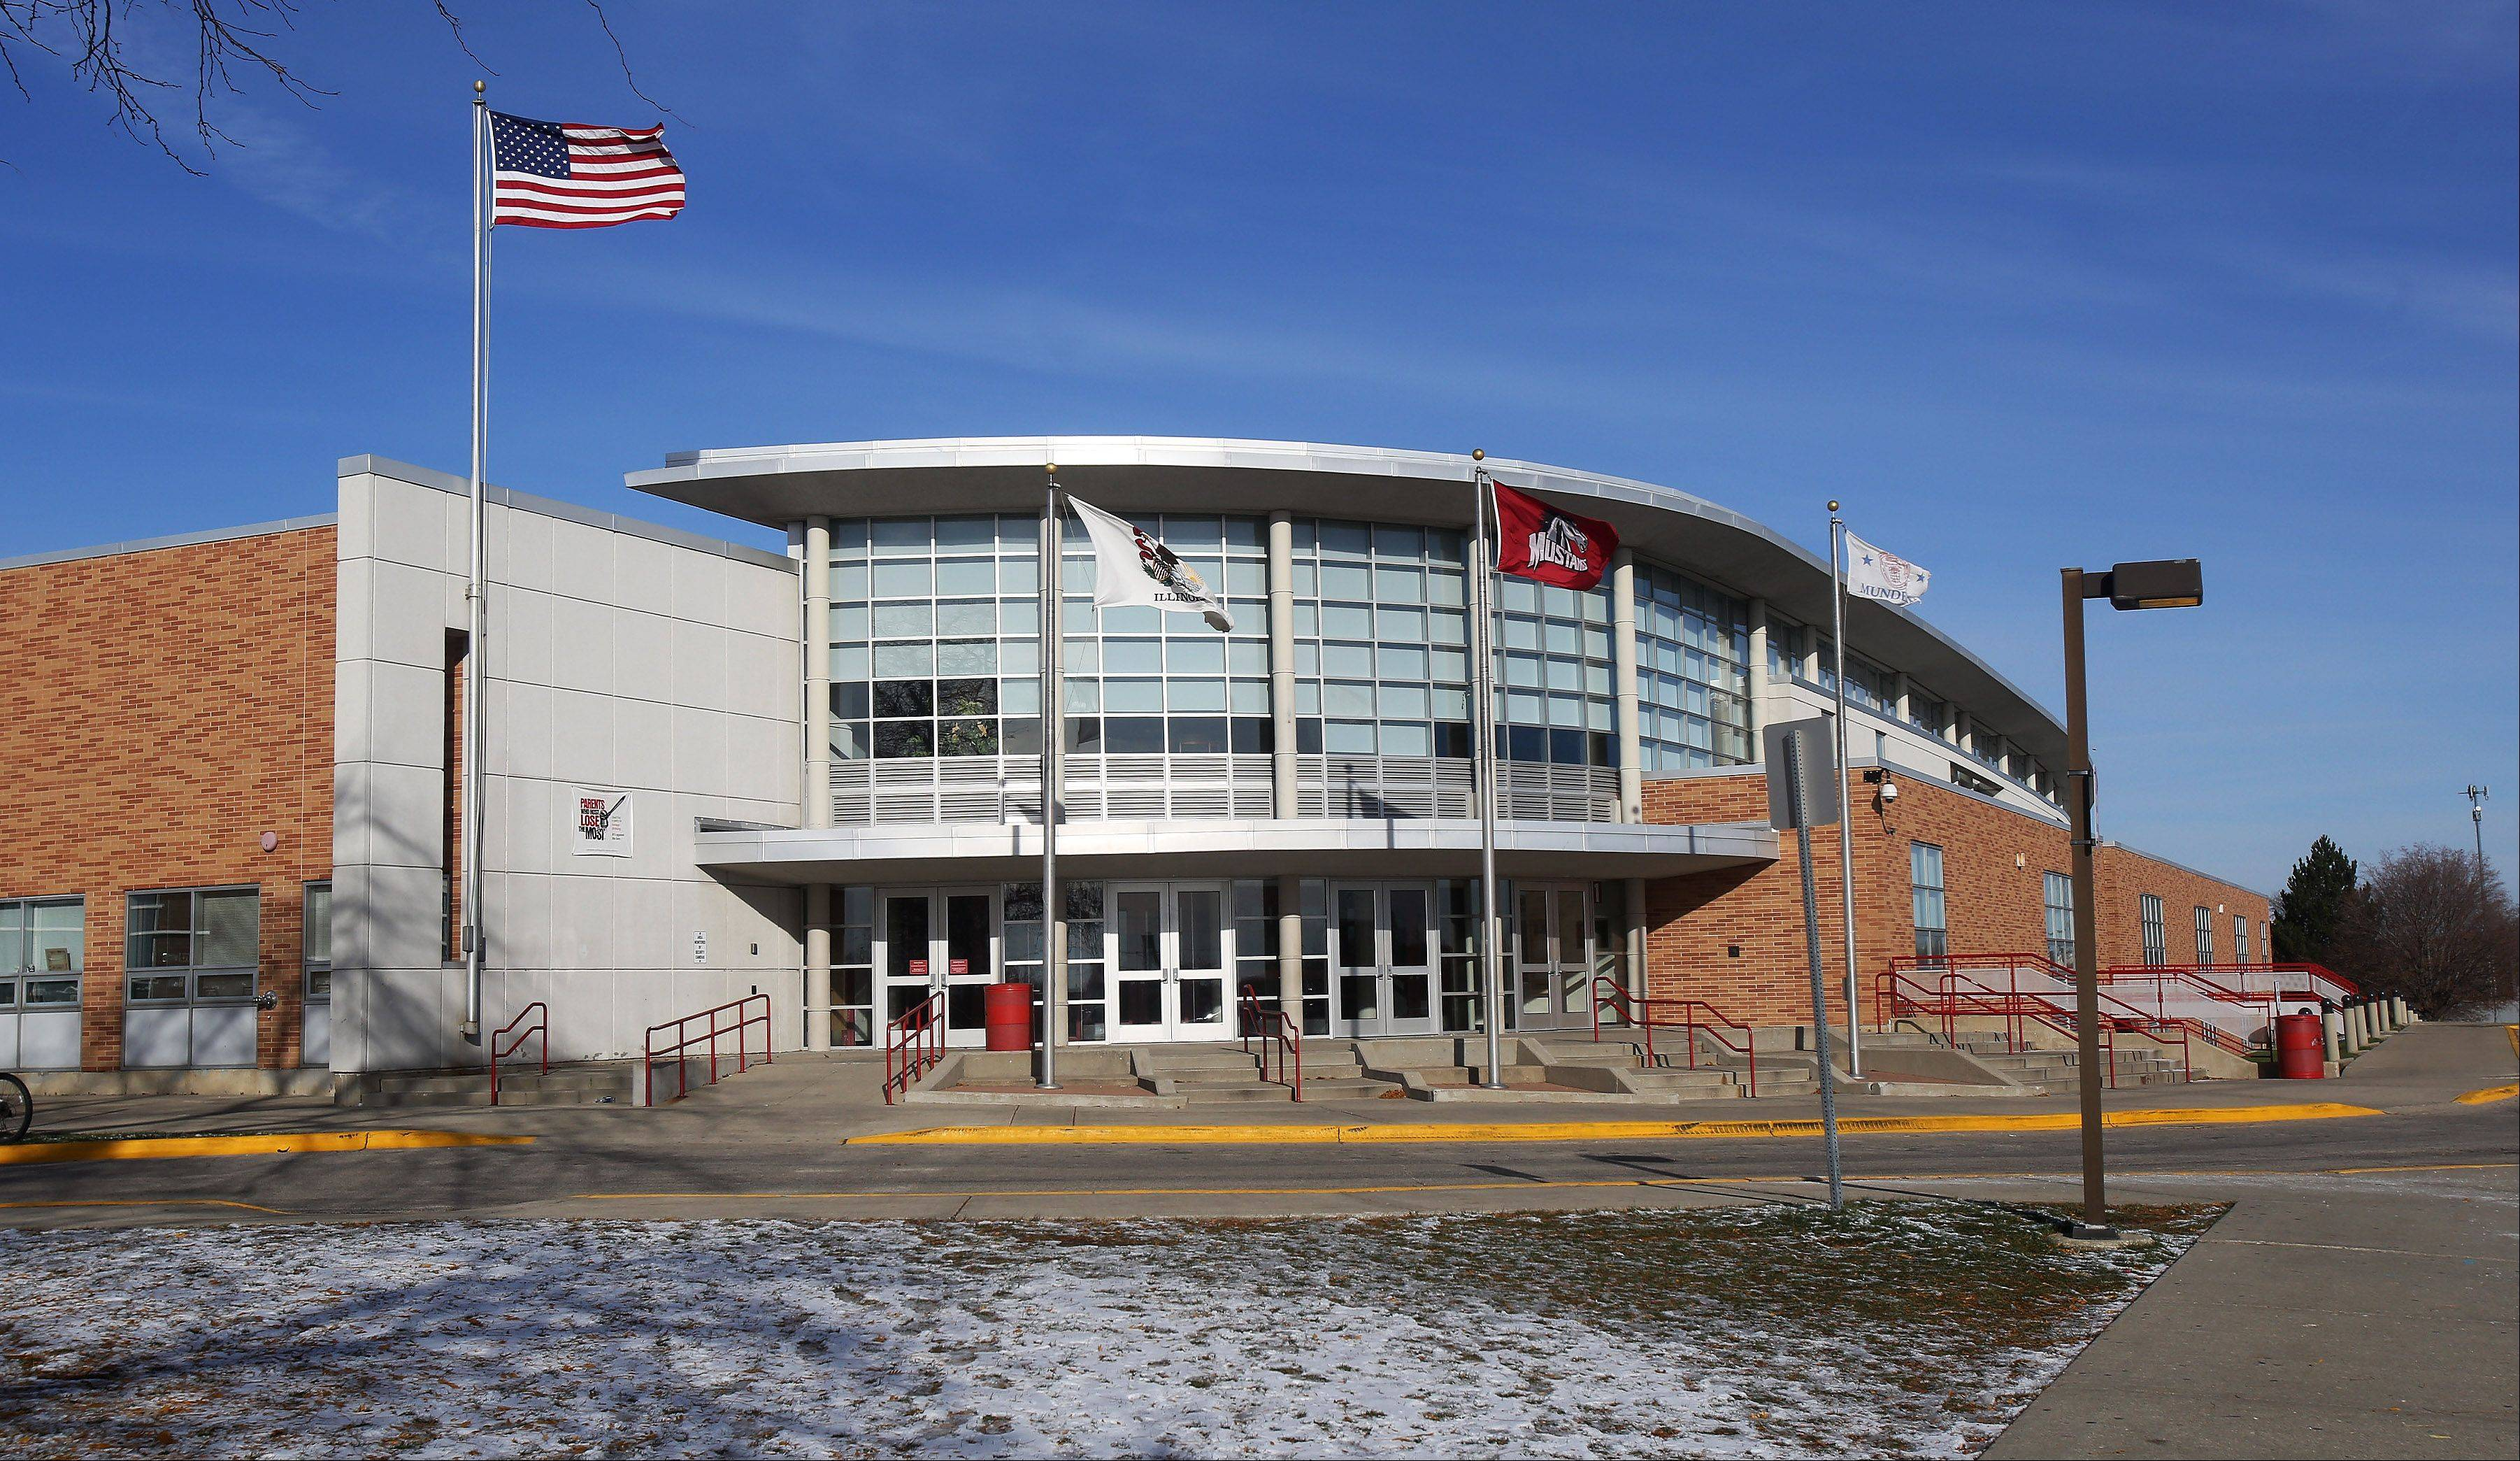 Mundelein High School officials are considering plans for a $21 million addition to the school building, its largest expansion in nearly two decades. The plan, to be funded partially through a state grant, calls for a three-story addition with space for 23 new classrooms.